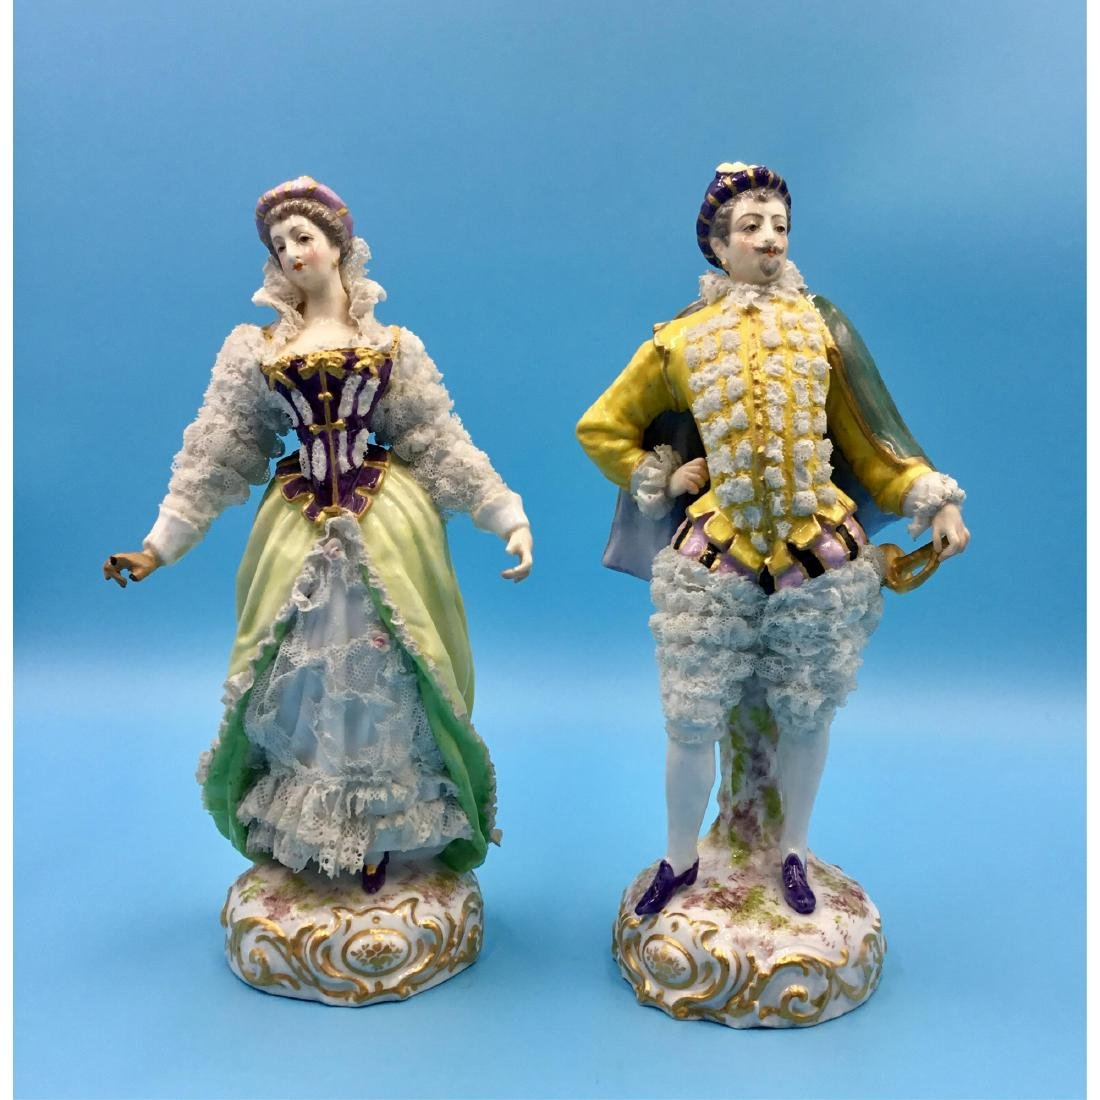 PAIR OF ACHILLE BLOCH FRENCH PORCELAIN FIGURINES